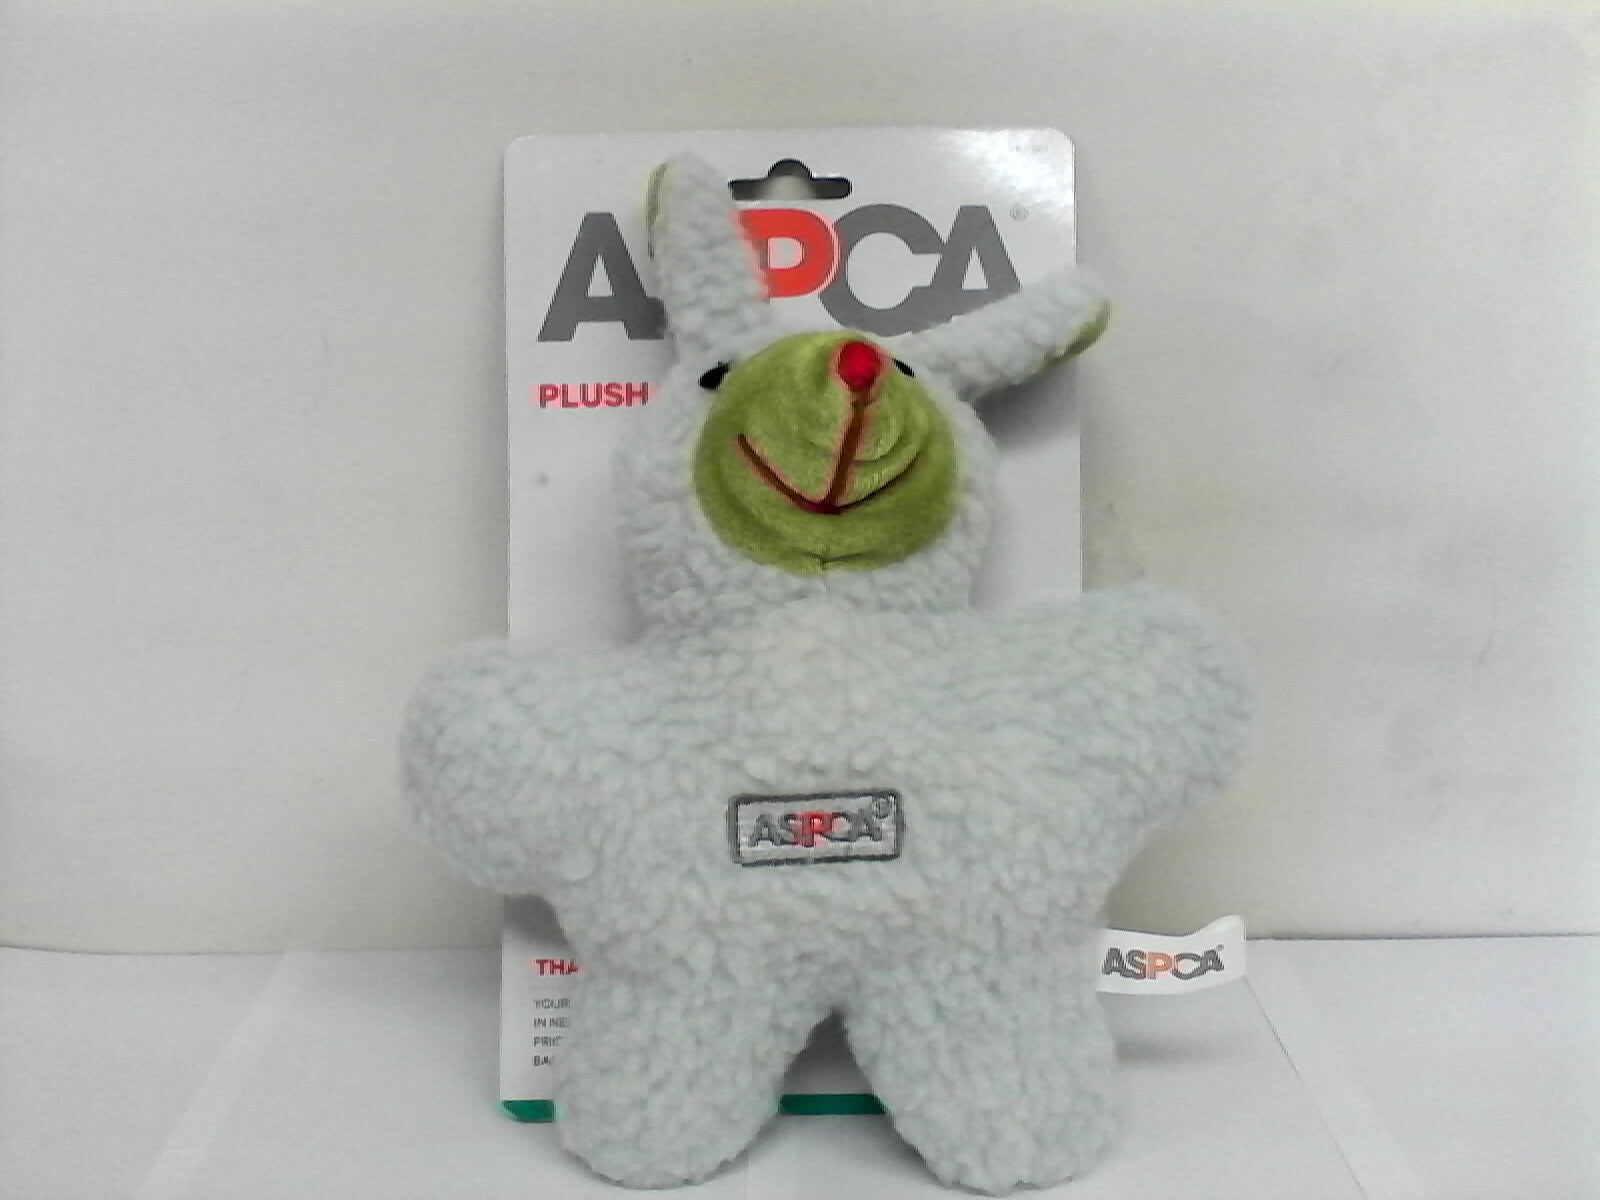 ASPCA Plush Toy with Squeaker (Dog)